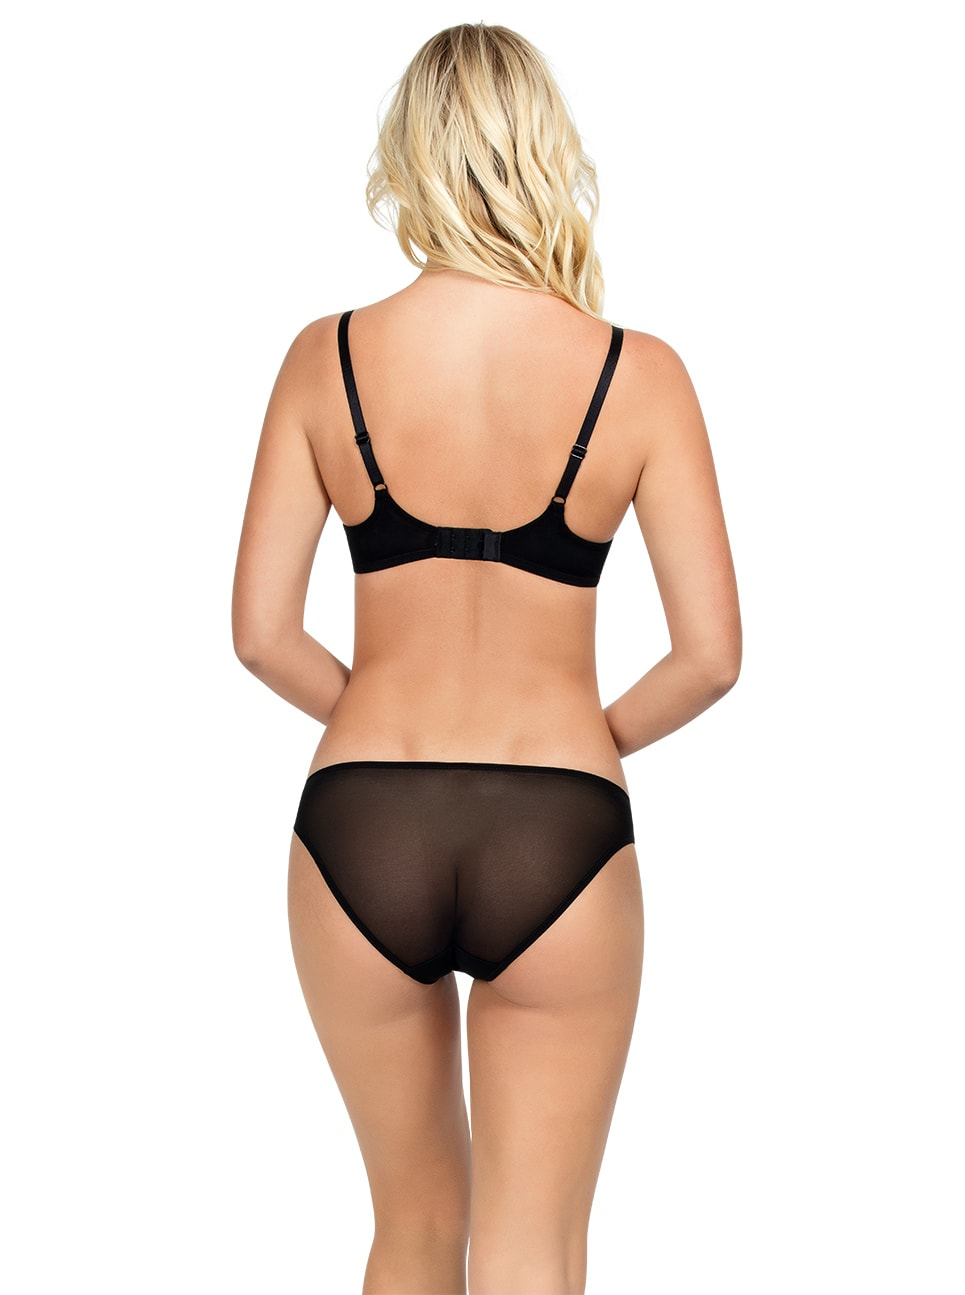 Amour Unlined Wire Bra - Black - A1472